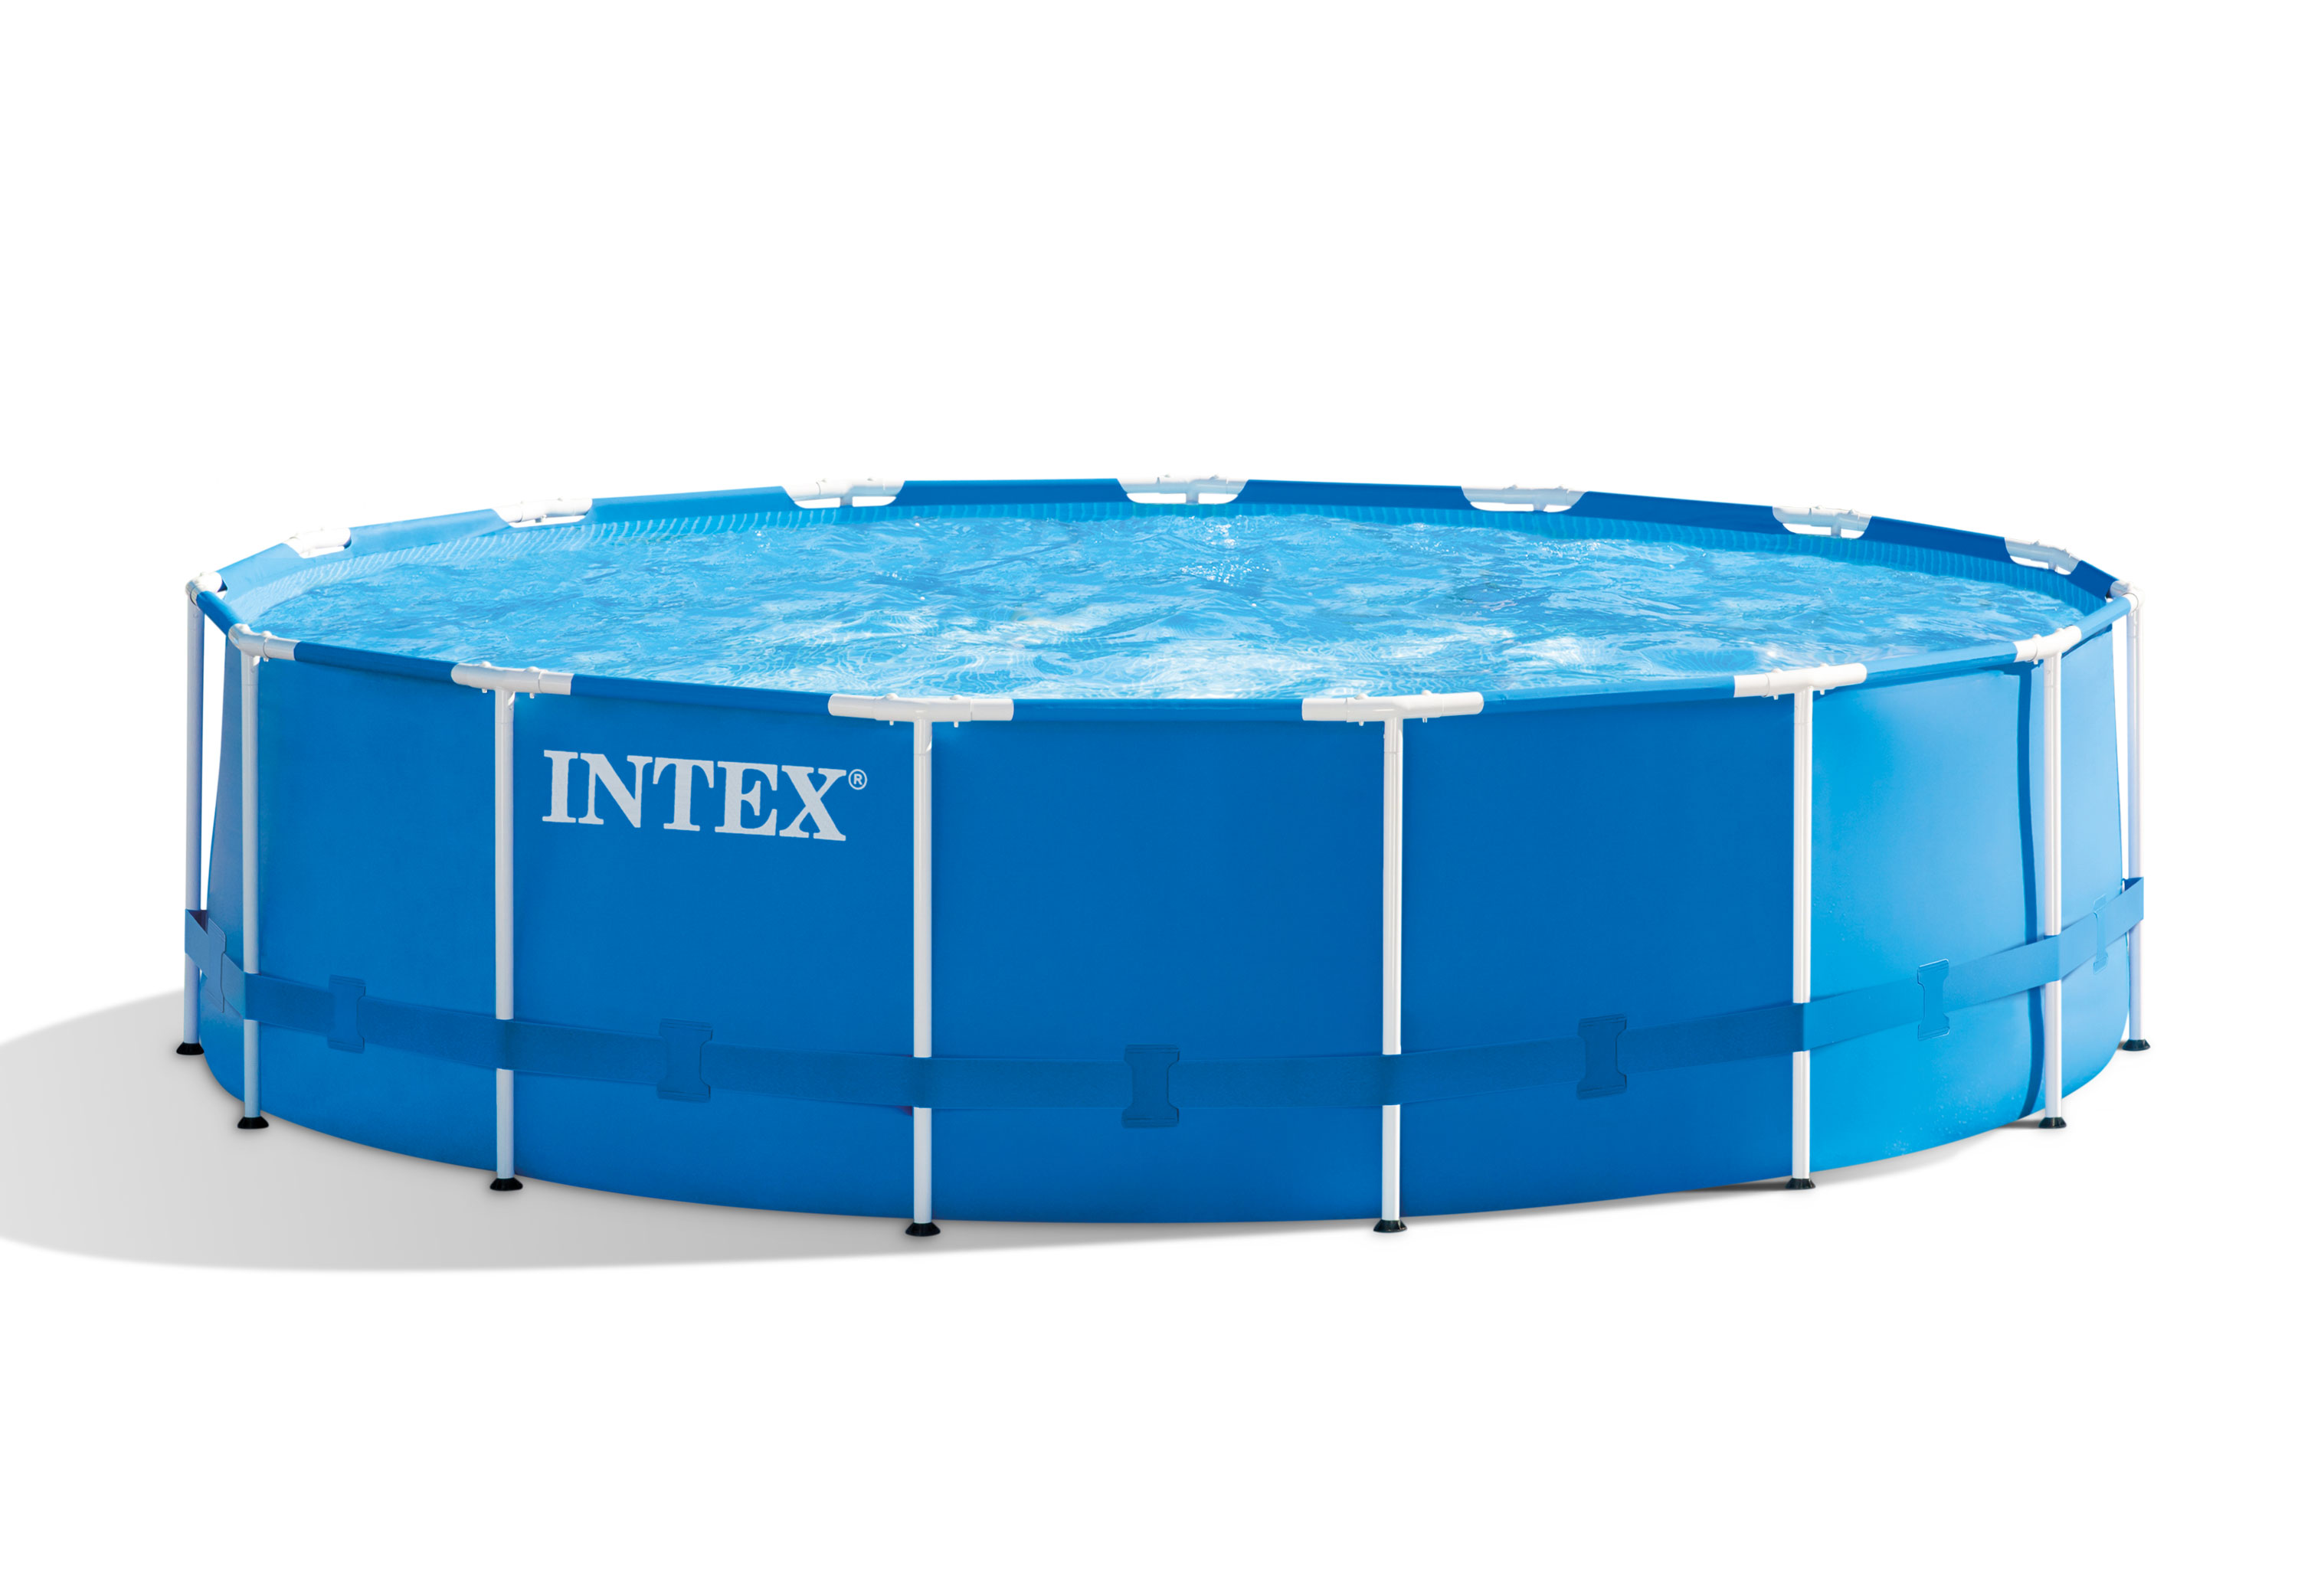 intex 15 39 x 48 metal frame swimming pool set w pump and filter pump cartridges ebay. Black Bedroom Furniture Sets. Home Design Ideas